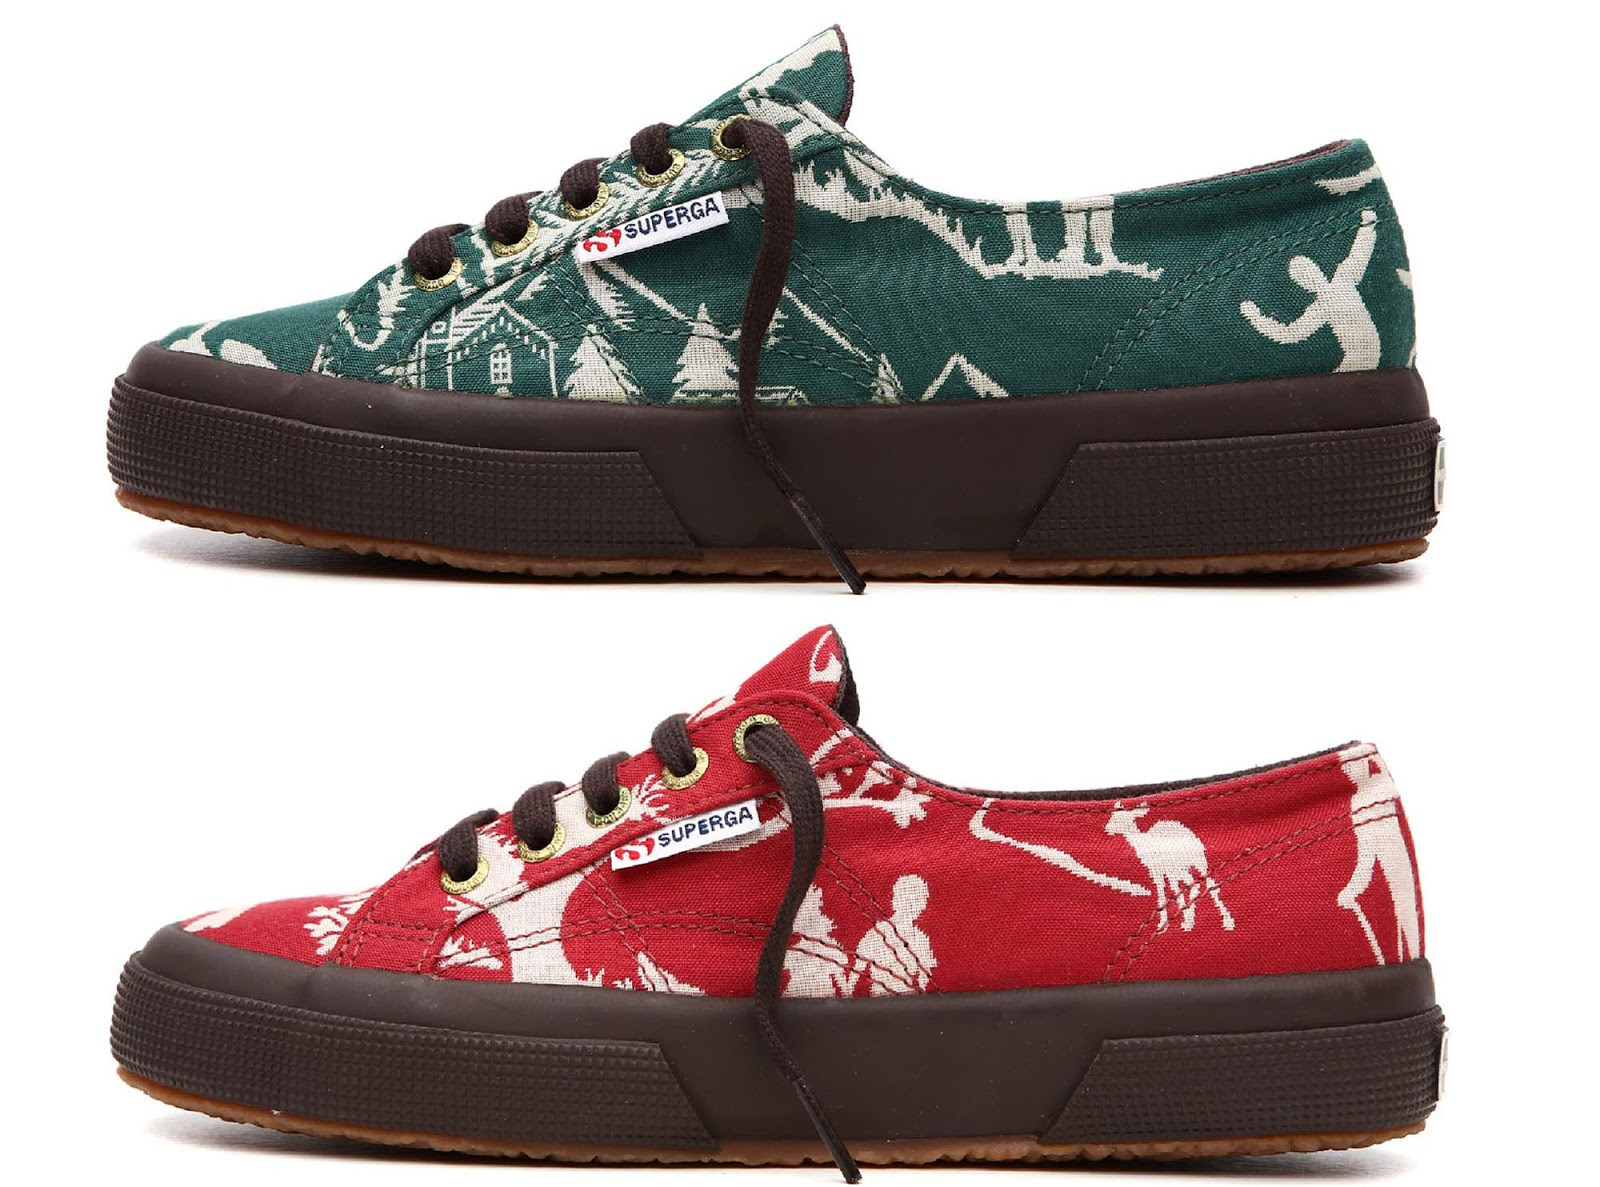 Eniwhere Fashion - Caspule Collection - Superga